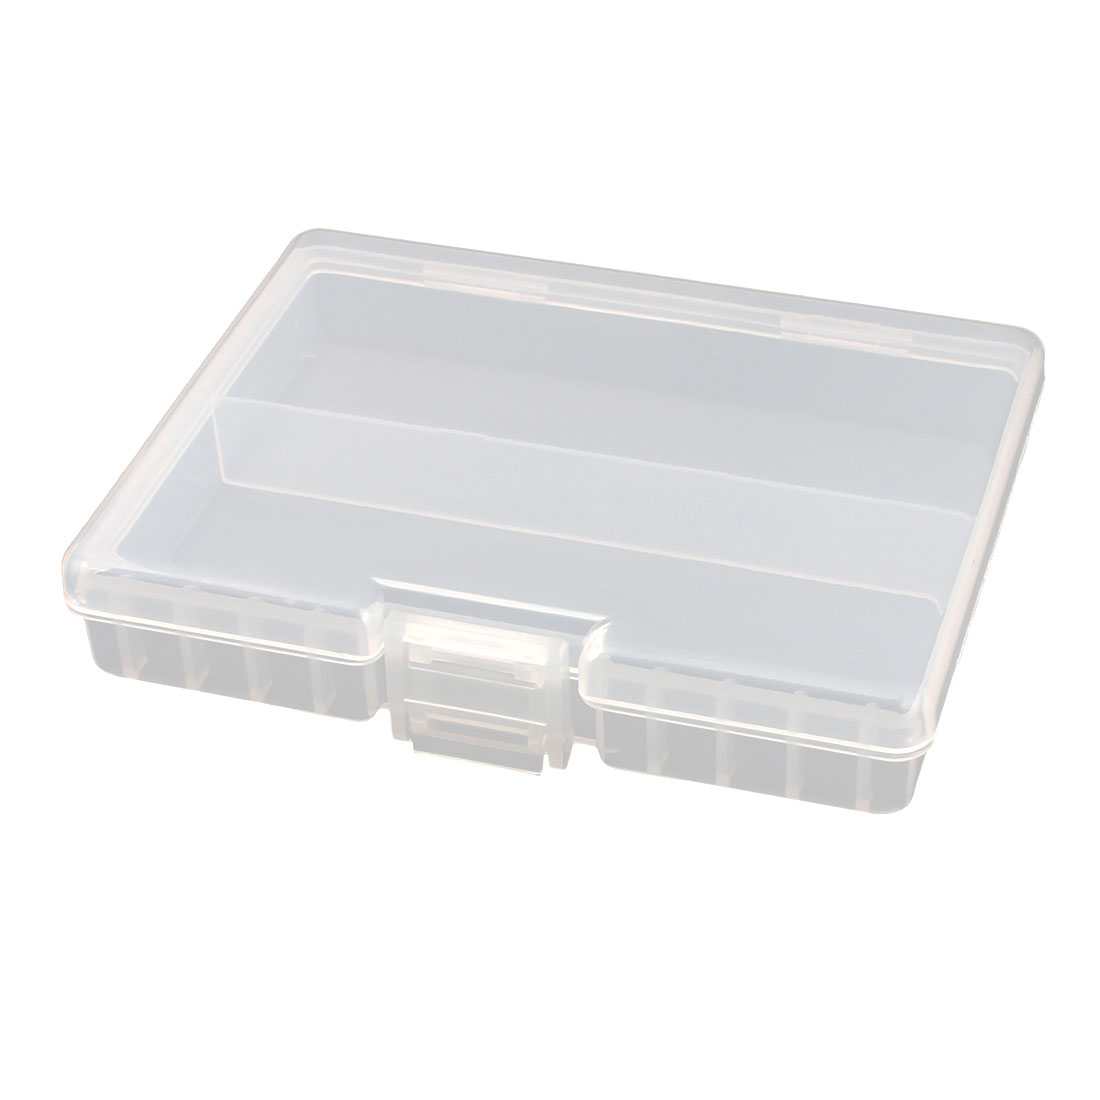 Hard Plastic Case Holder Storage Box Container for 48 x AAA Battery